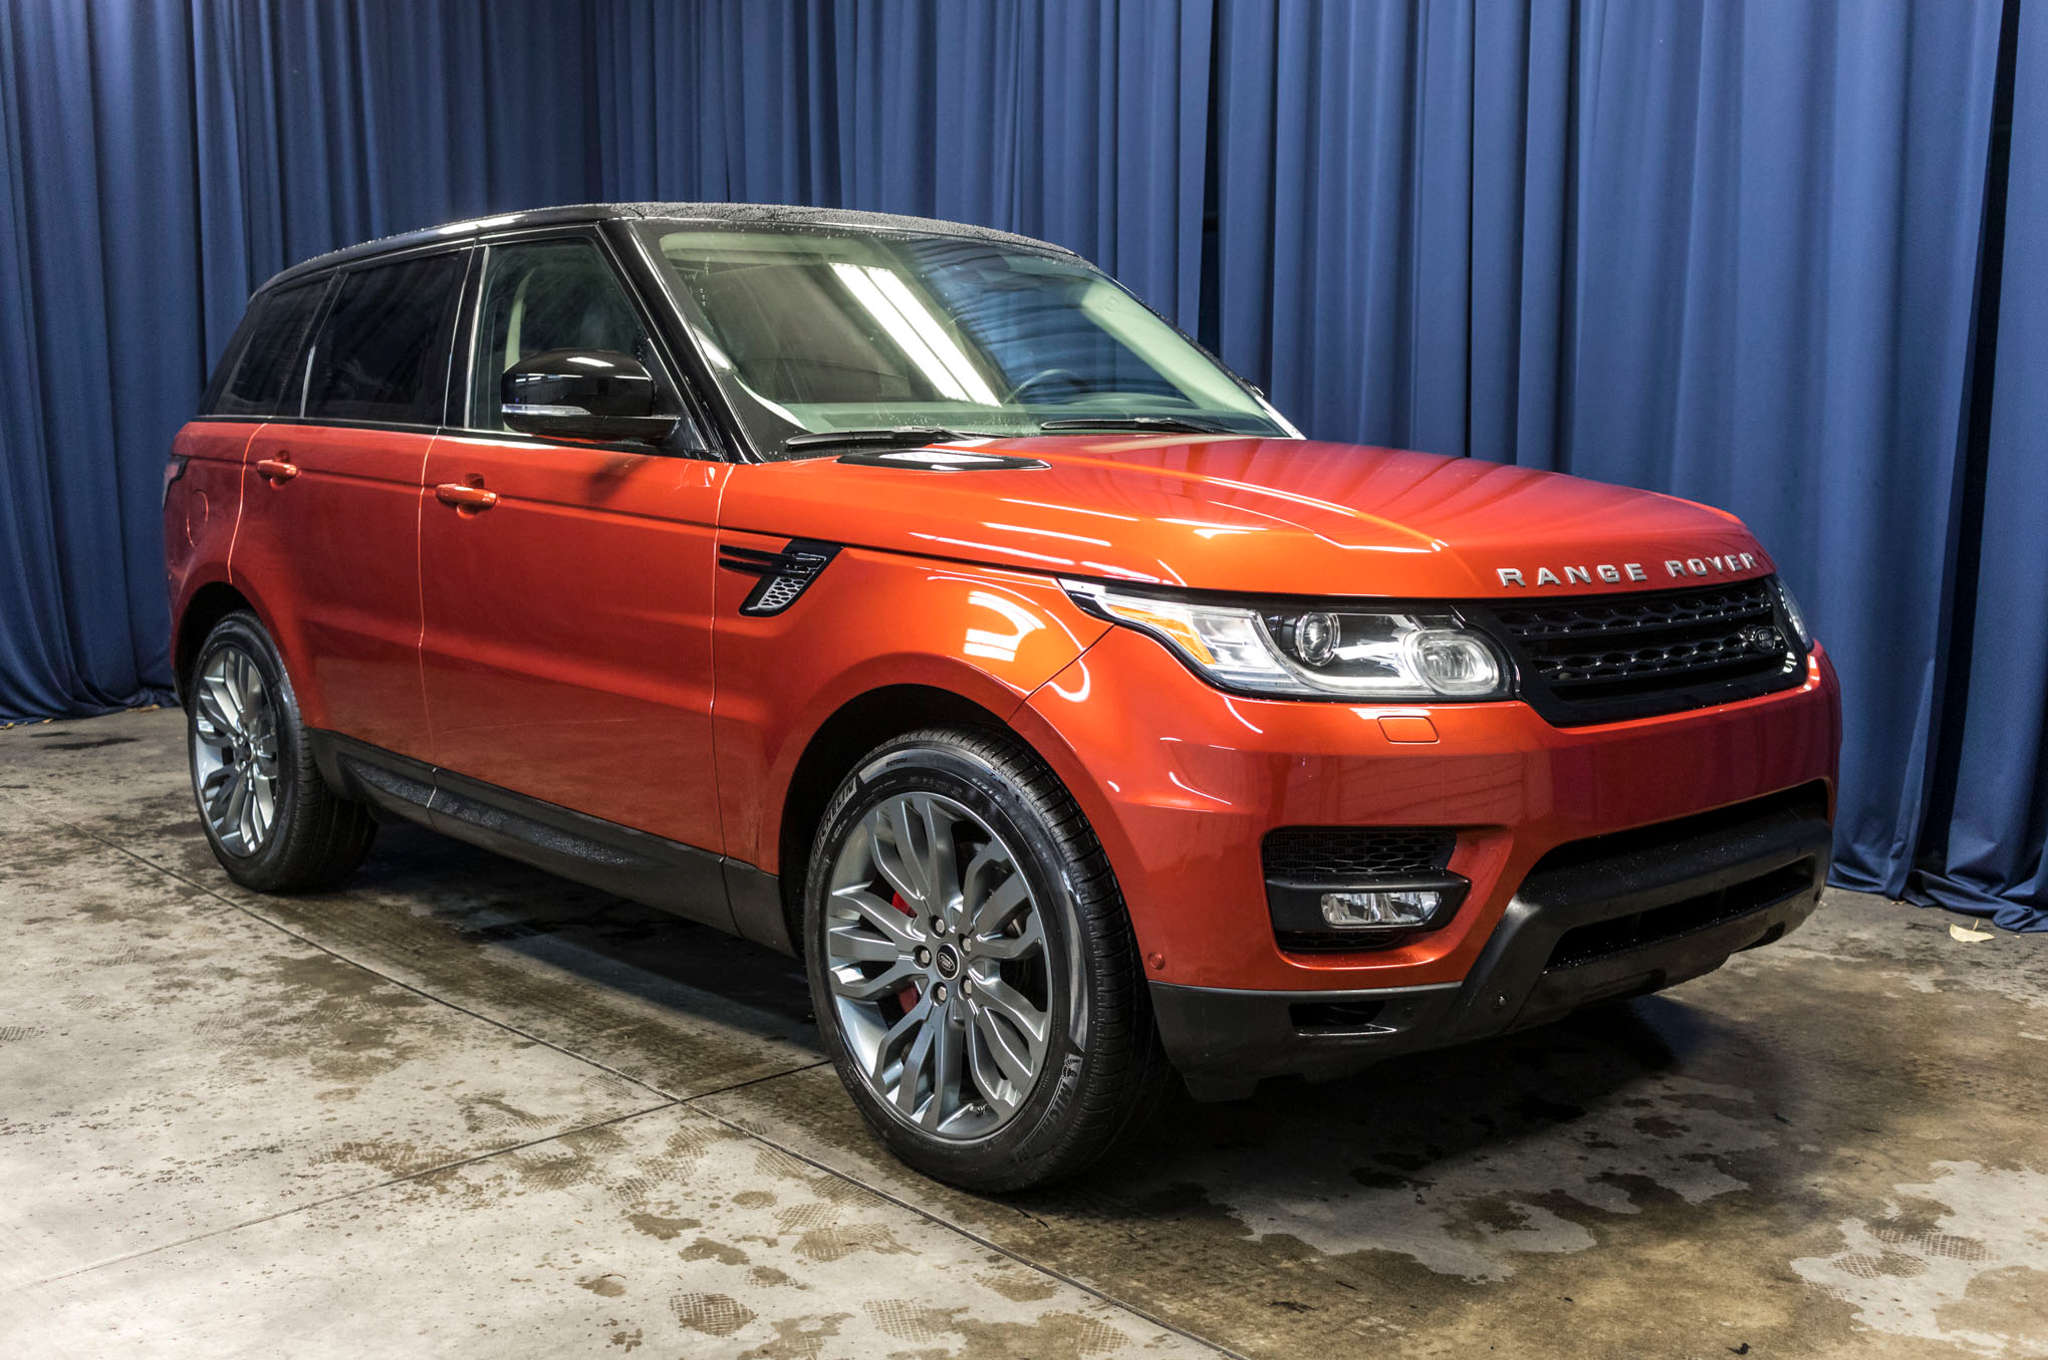 Used 2014 Land Rover Range Rover Sport Supercharged 4x4 SUV For Sale